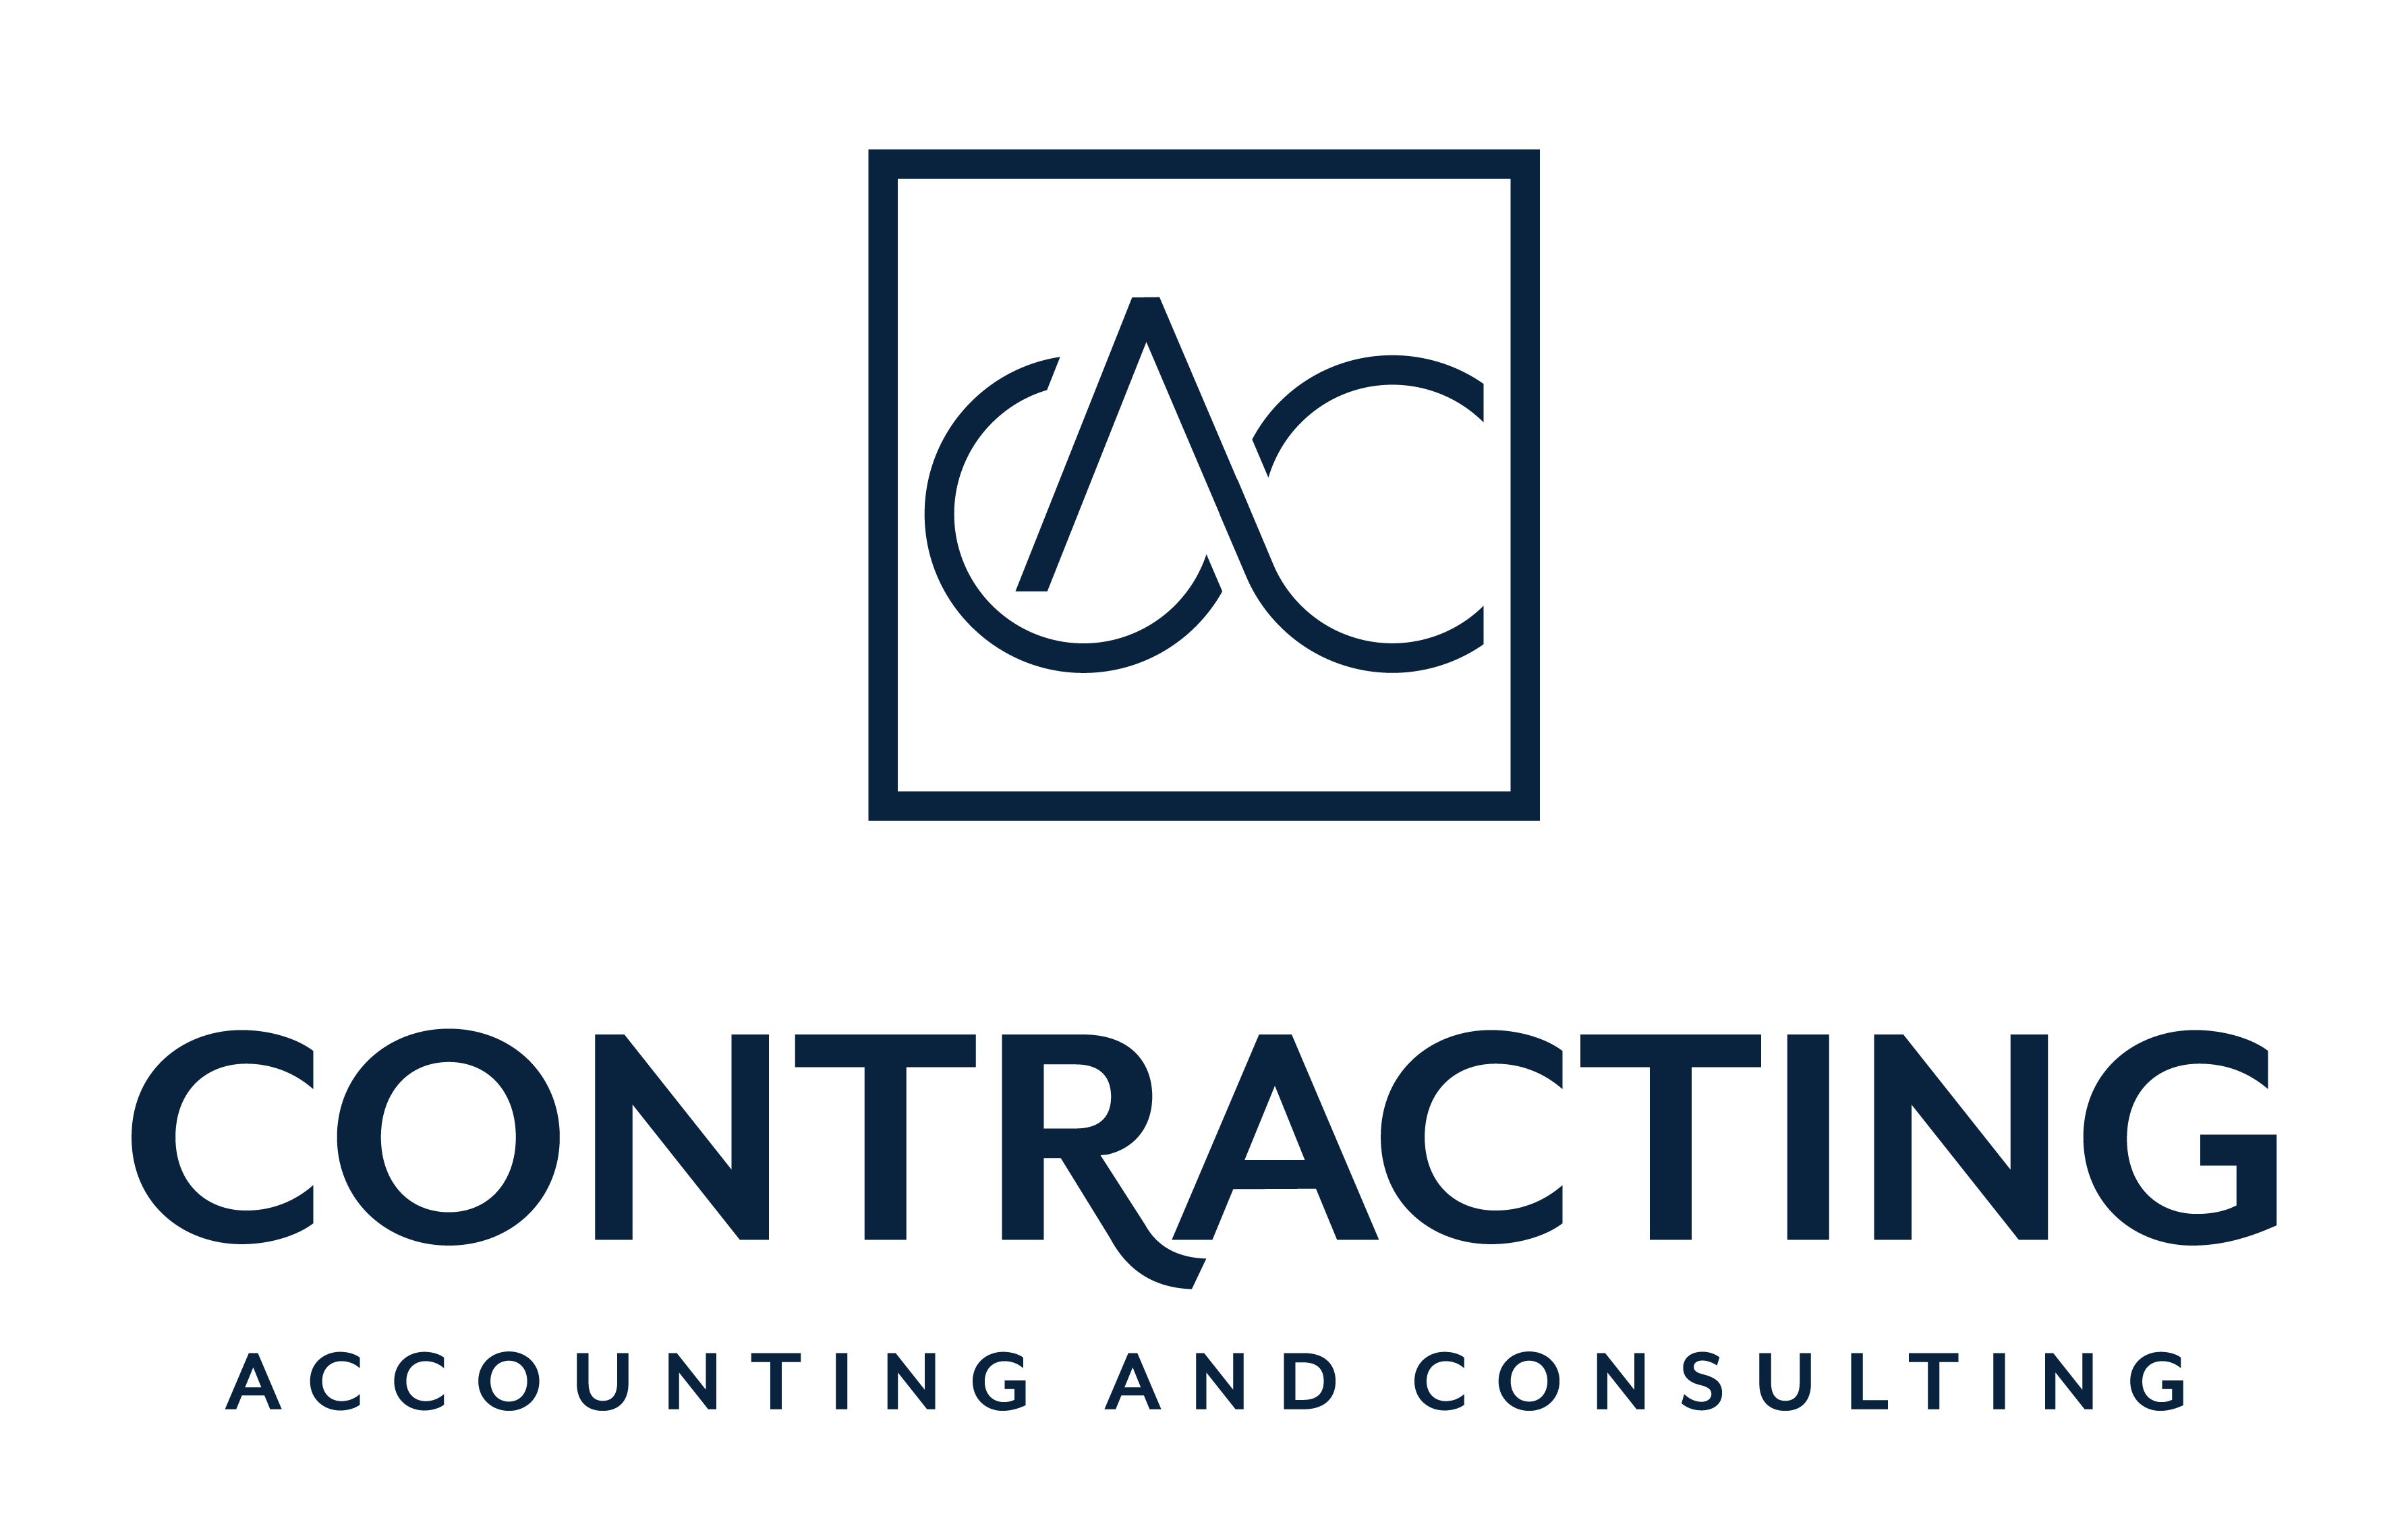 Logo Contracting